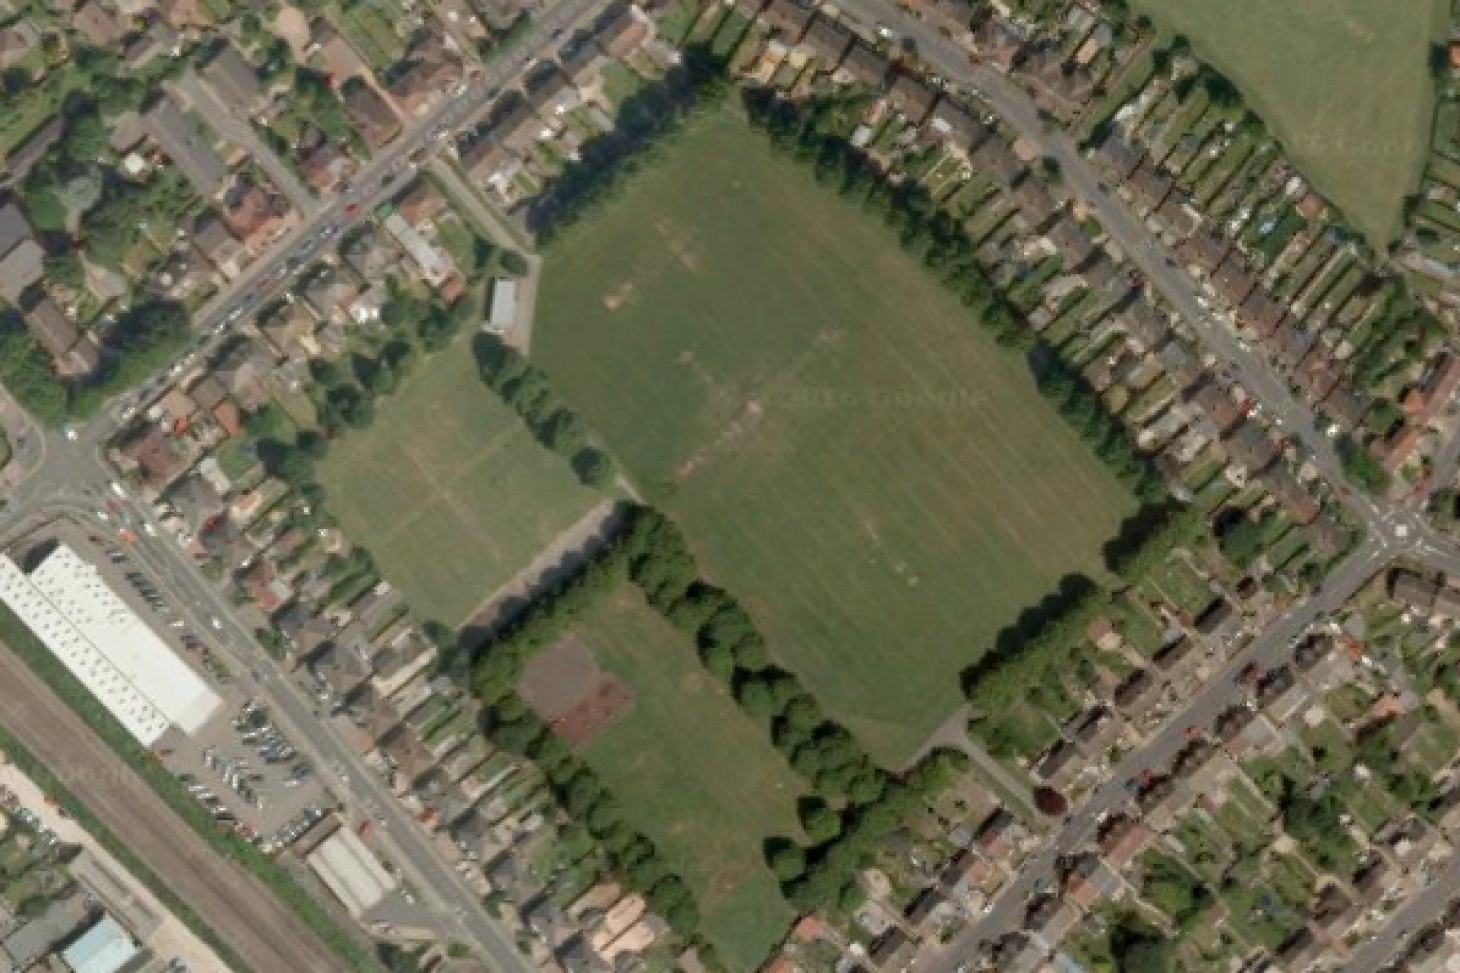 Blundell Road Recreation Ground 5 a side | Grass football pitch